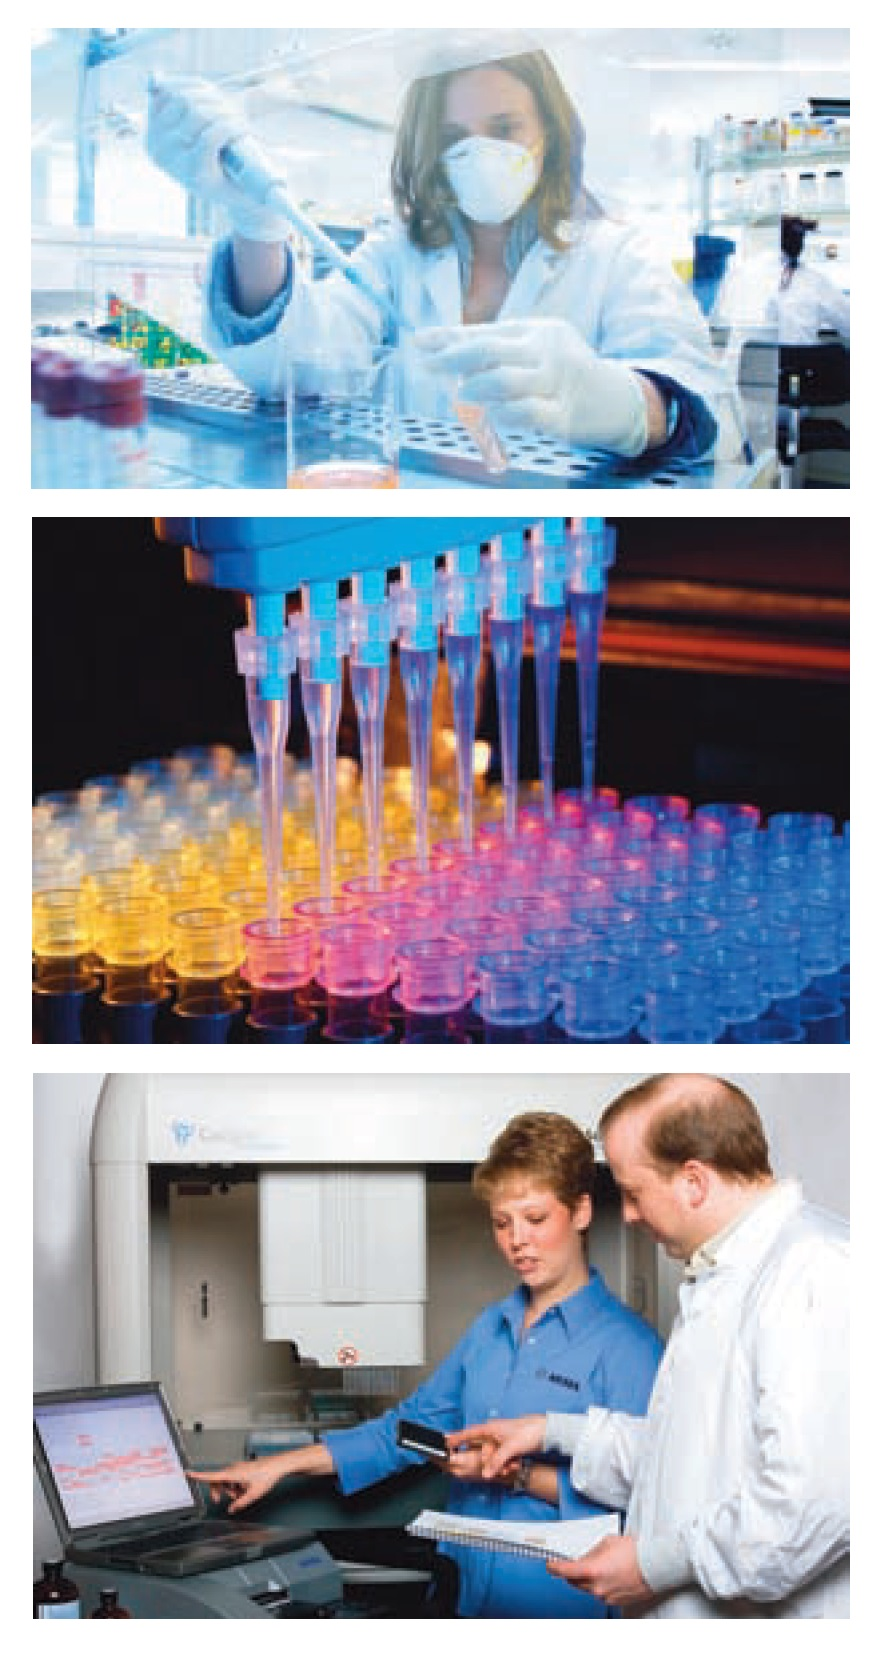 Image 1 Liquid handling and drug discovery, scientists in the lab and processes